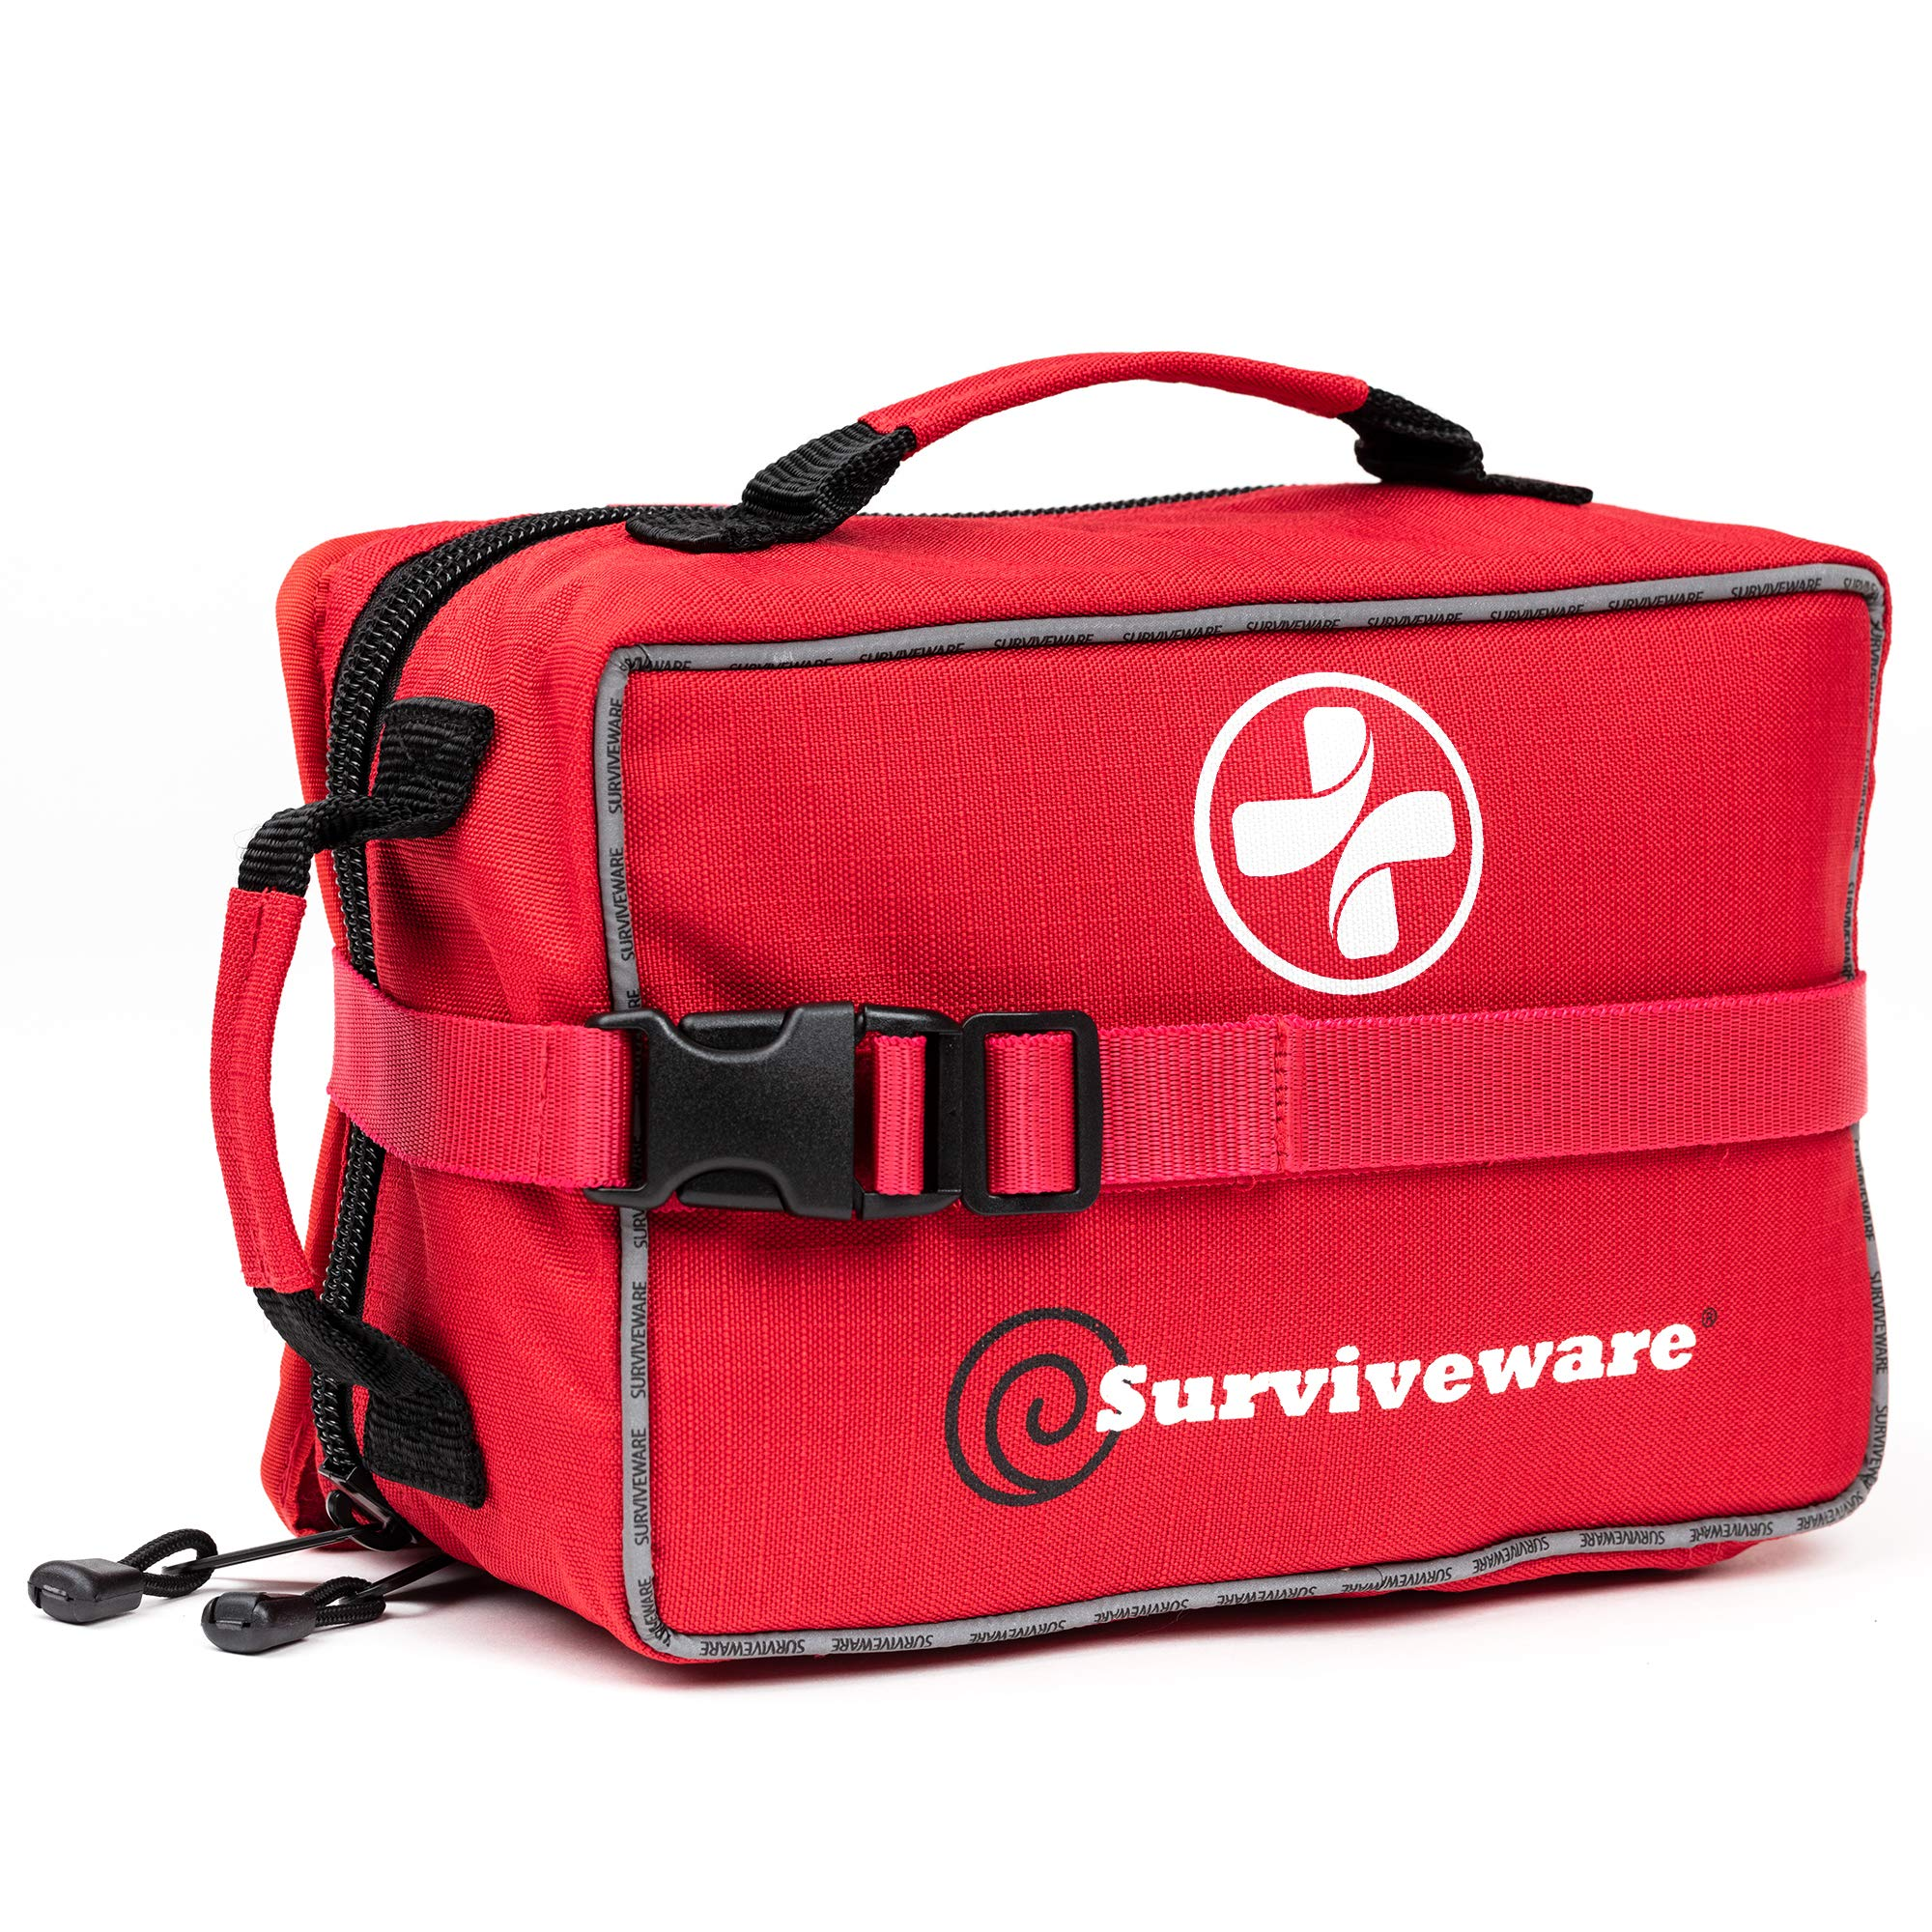 Surviveware Large First Aid Kit & Added Mini Kit by Surviveware (Image #1)